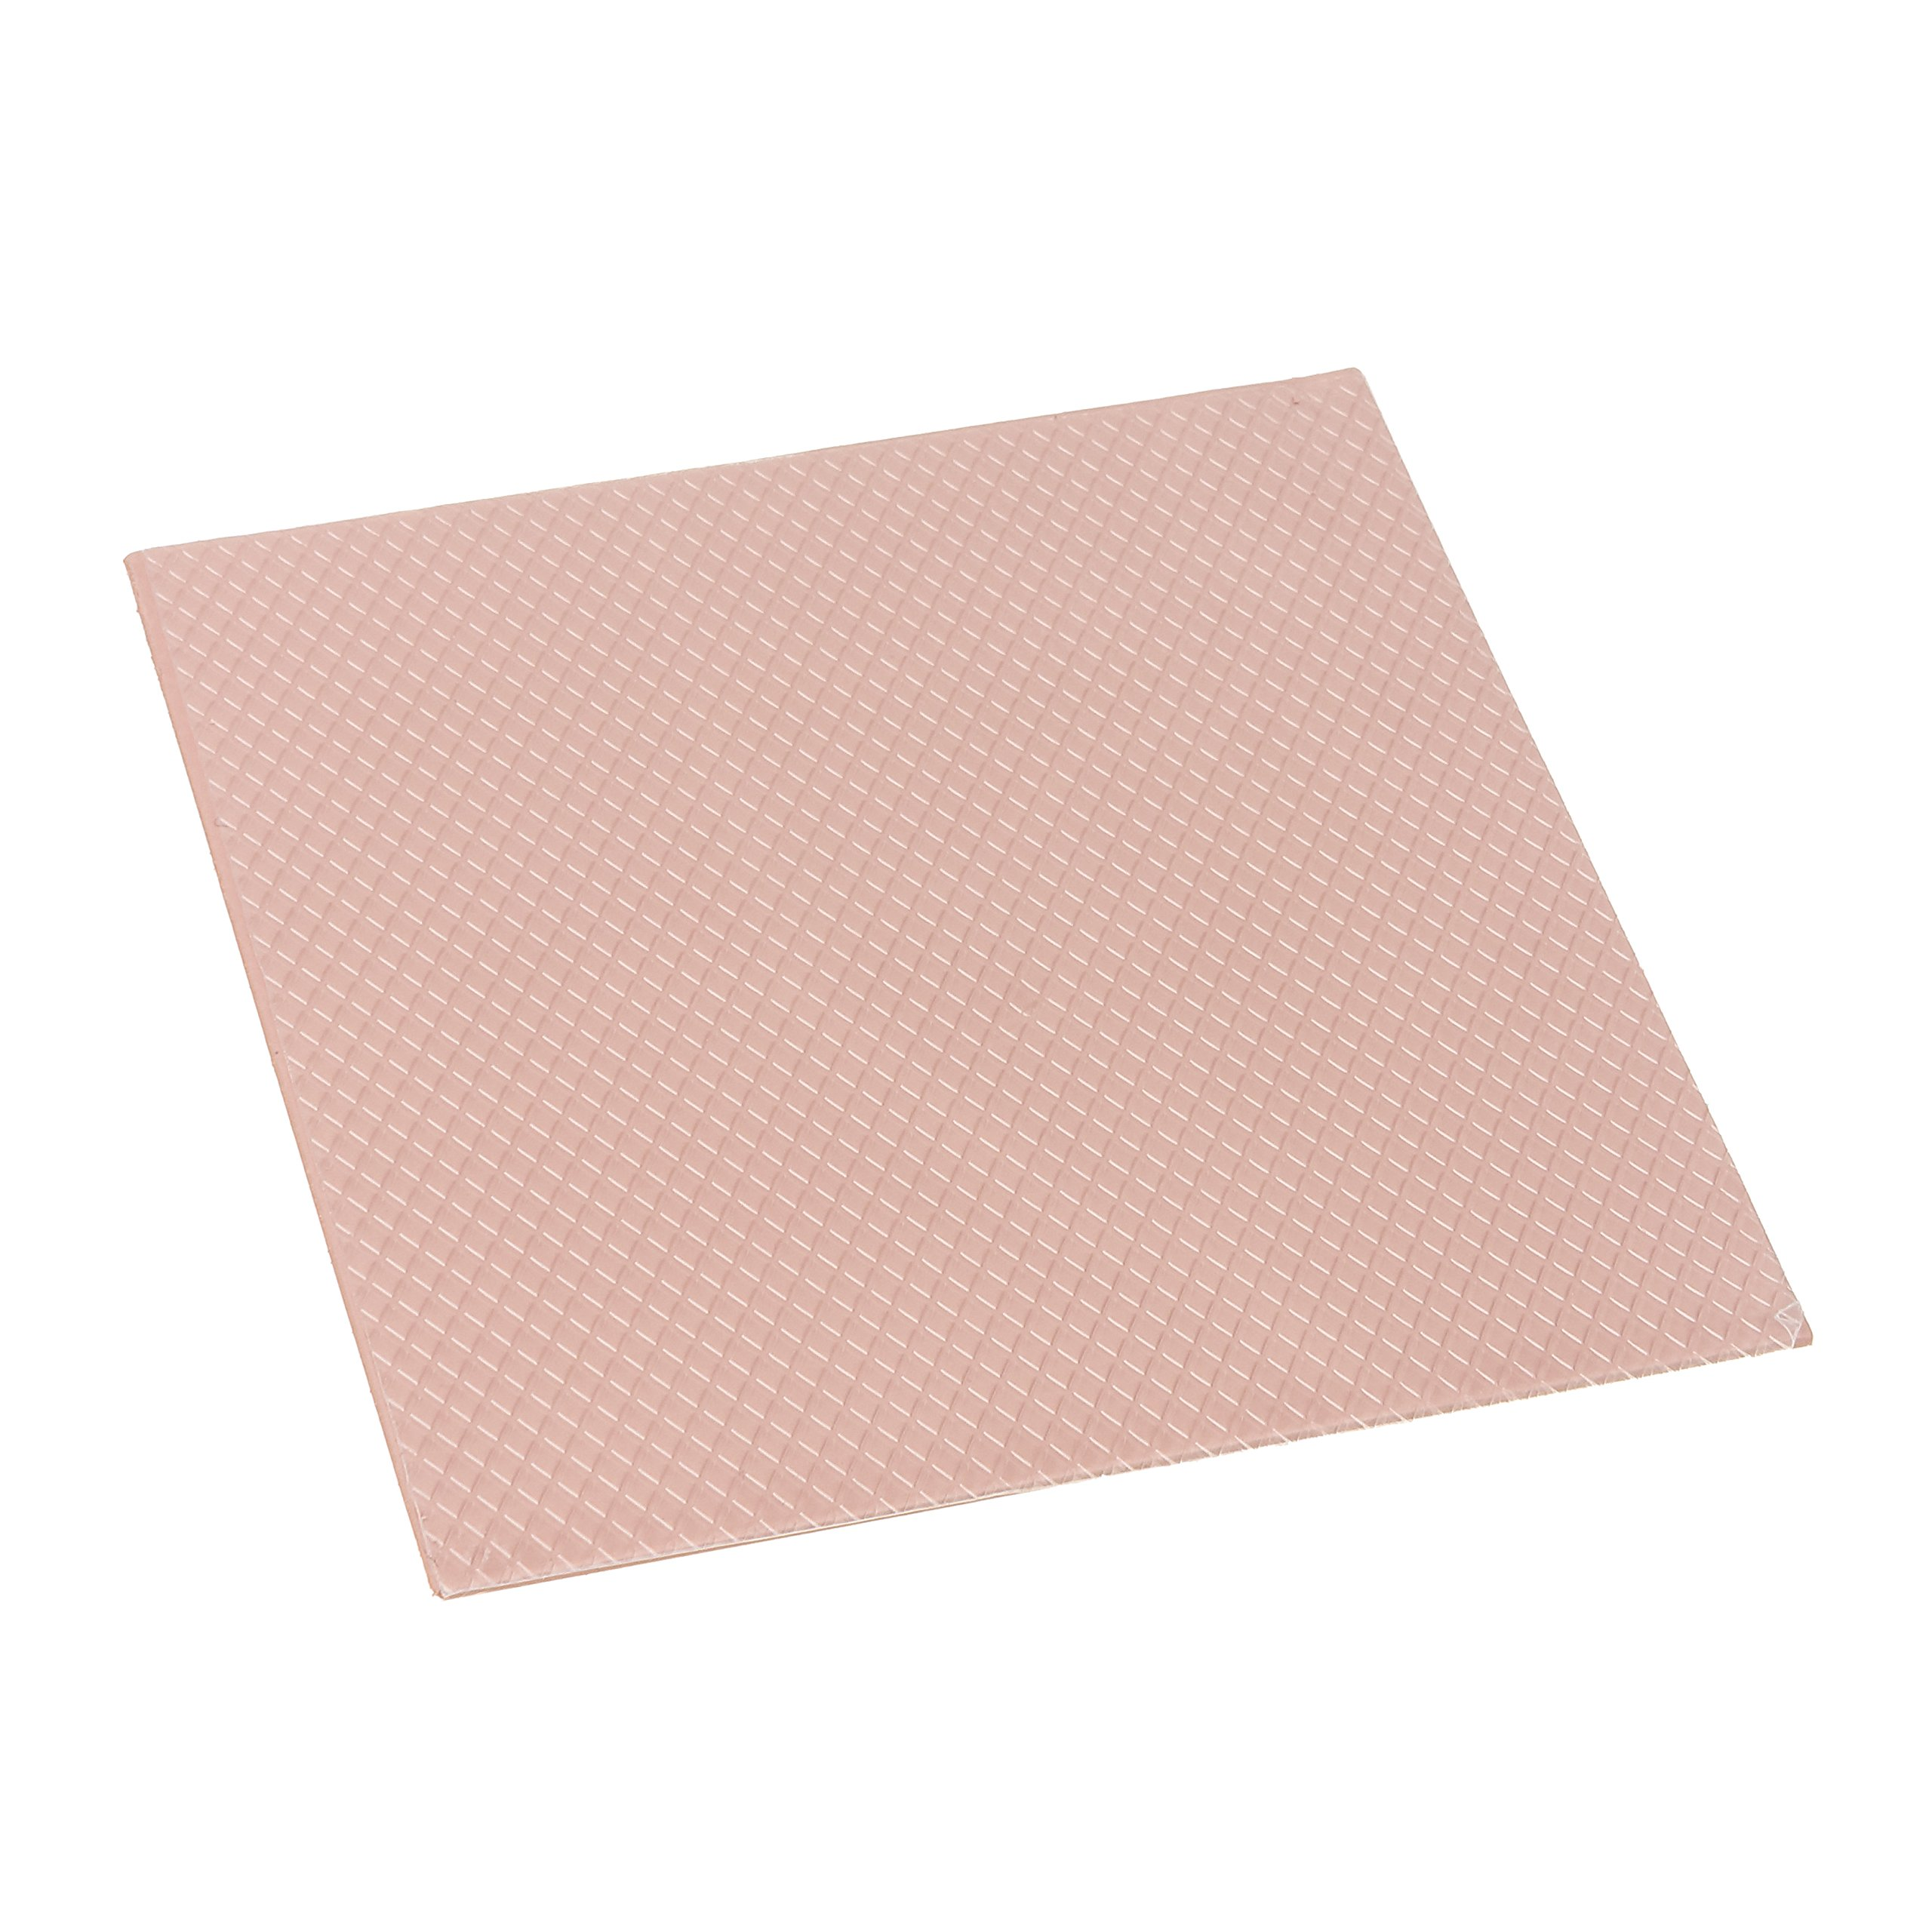 Thermal Grizzly Minus Pad 8 High Performance Thermal Pad - 100x100x0.5mm